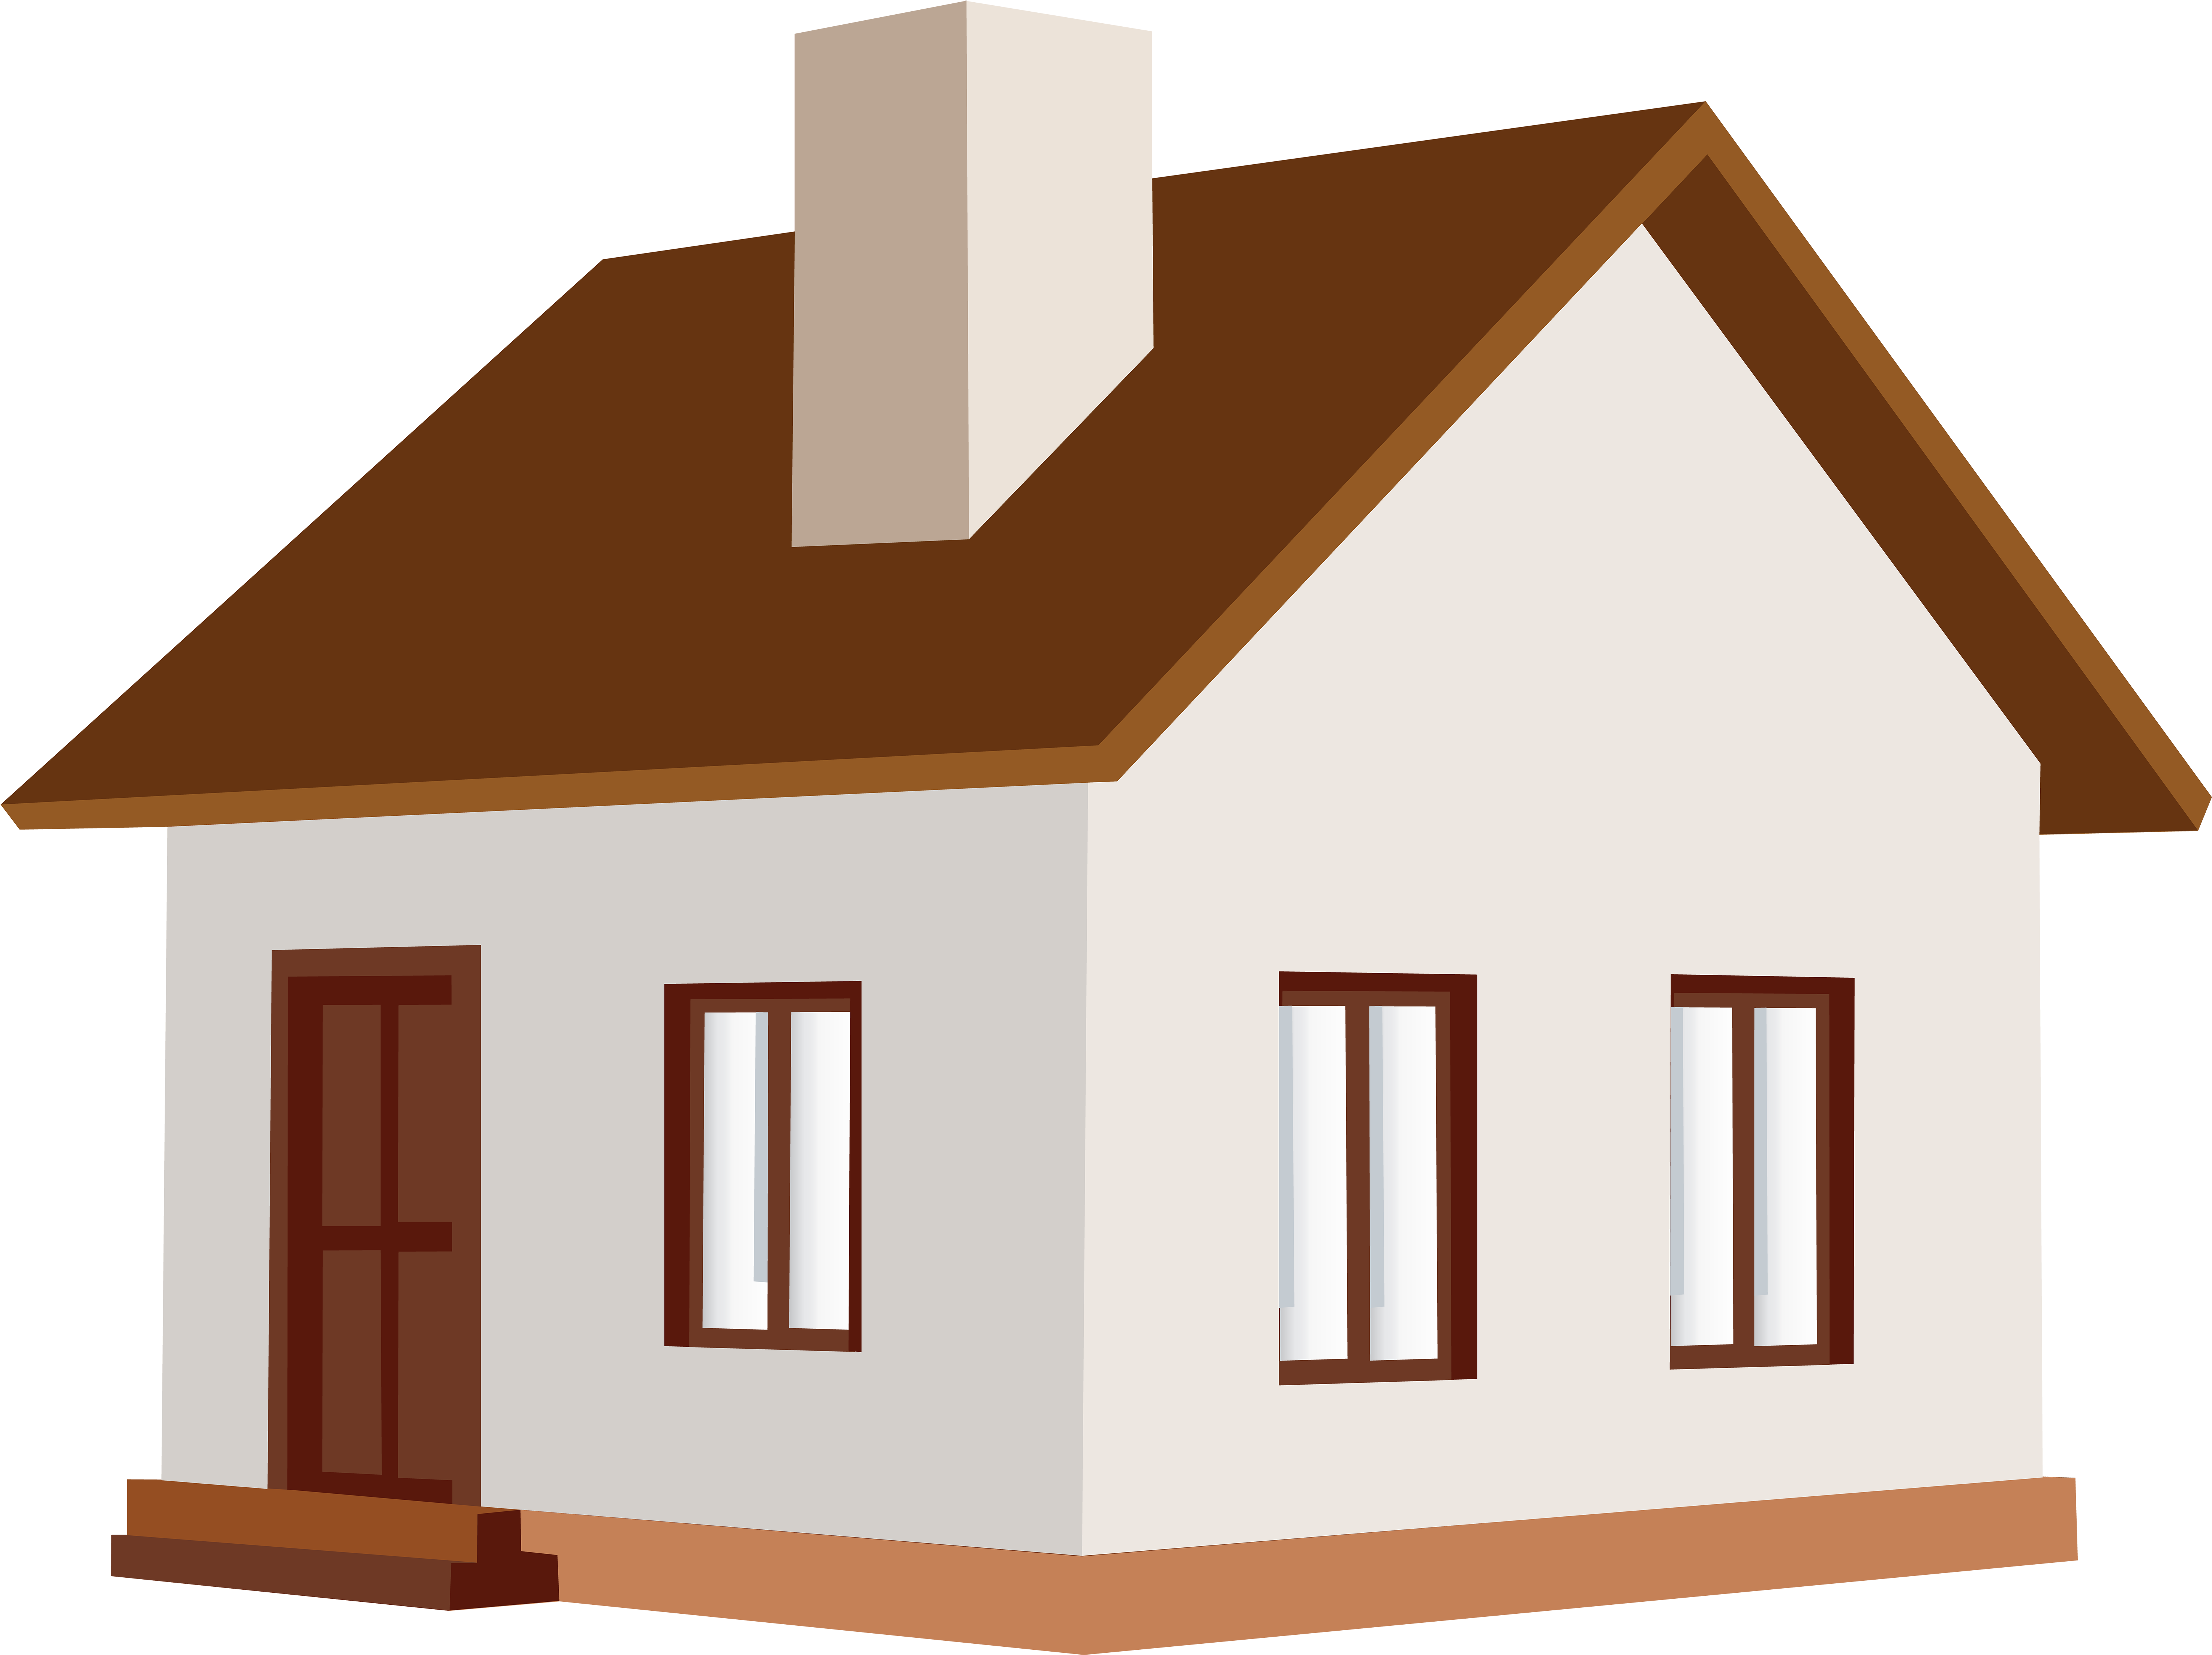 Download House Clipart Png Danielbentleyme Transparent Background House Clipart Full Size Png Image Pngkit